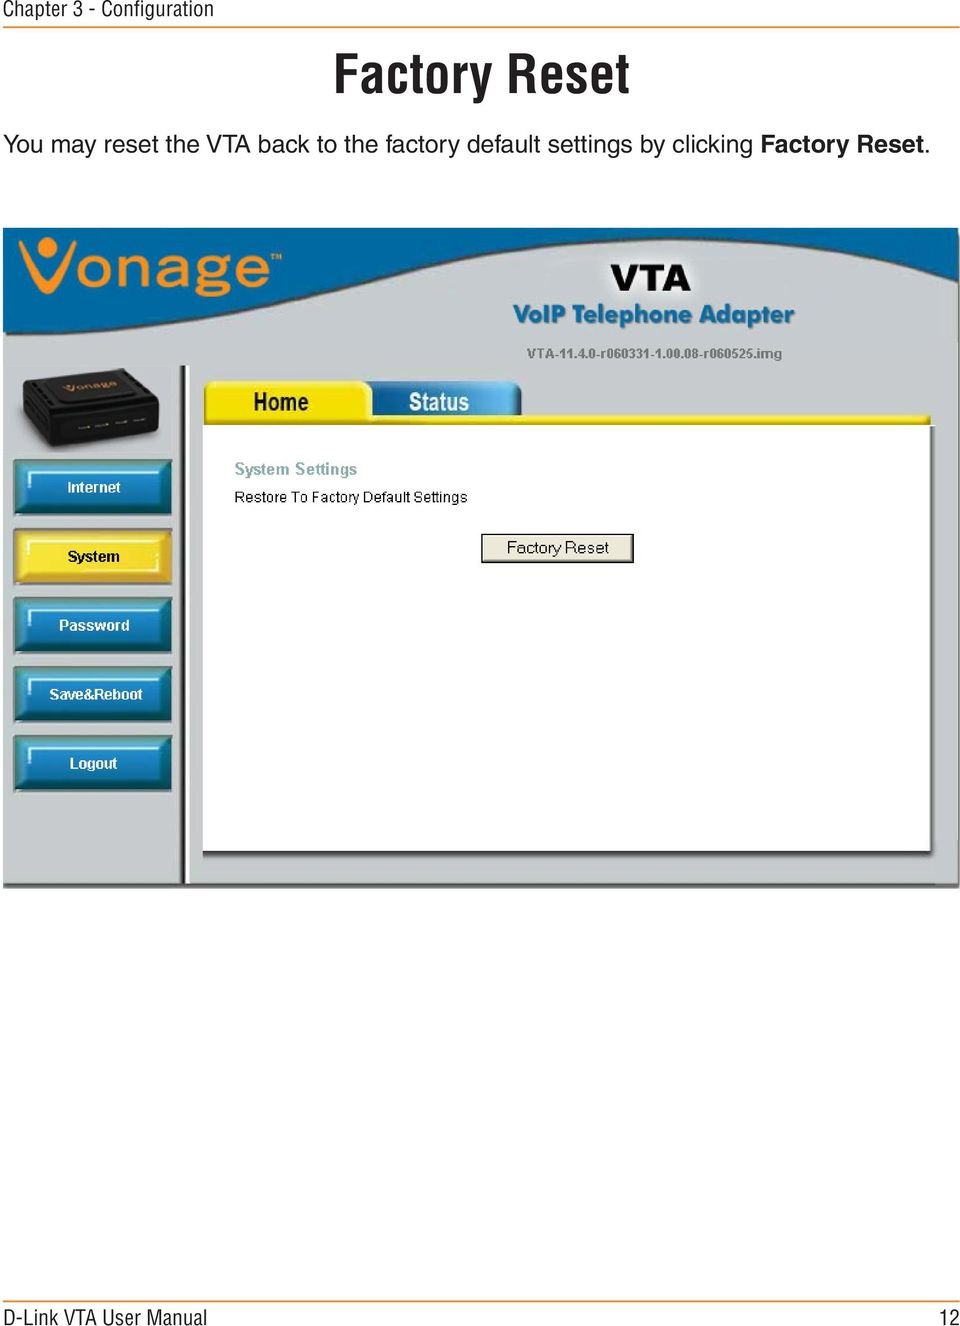 VTA back to the factory default